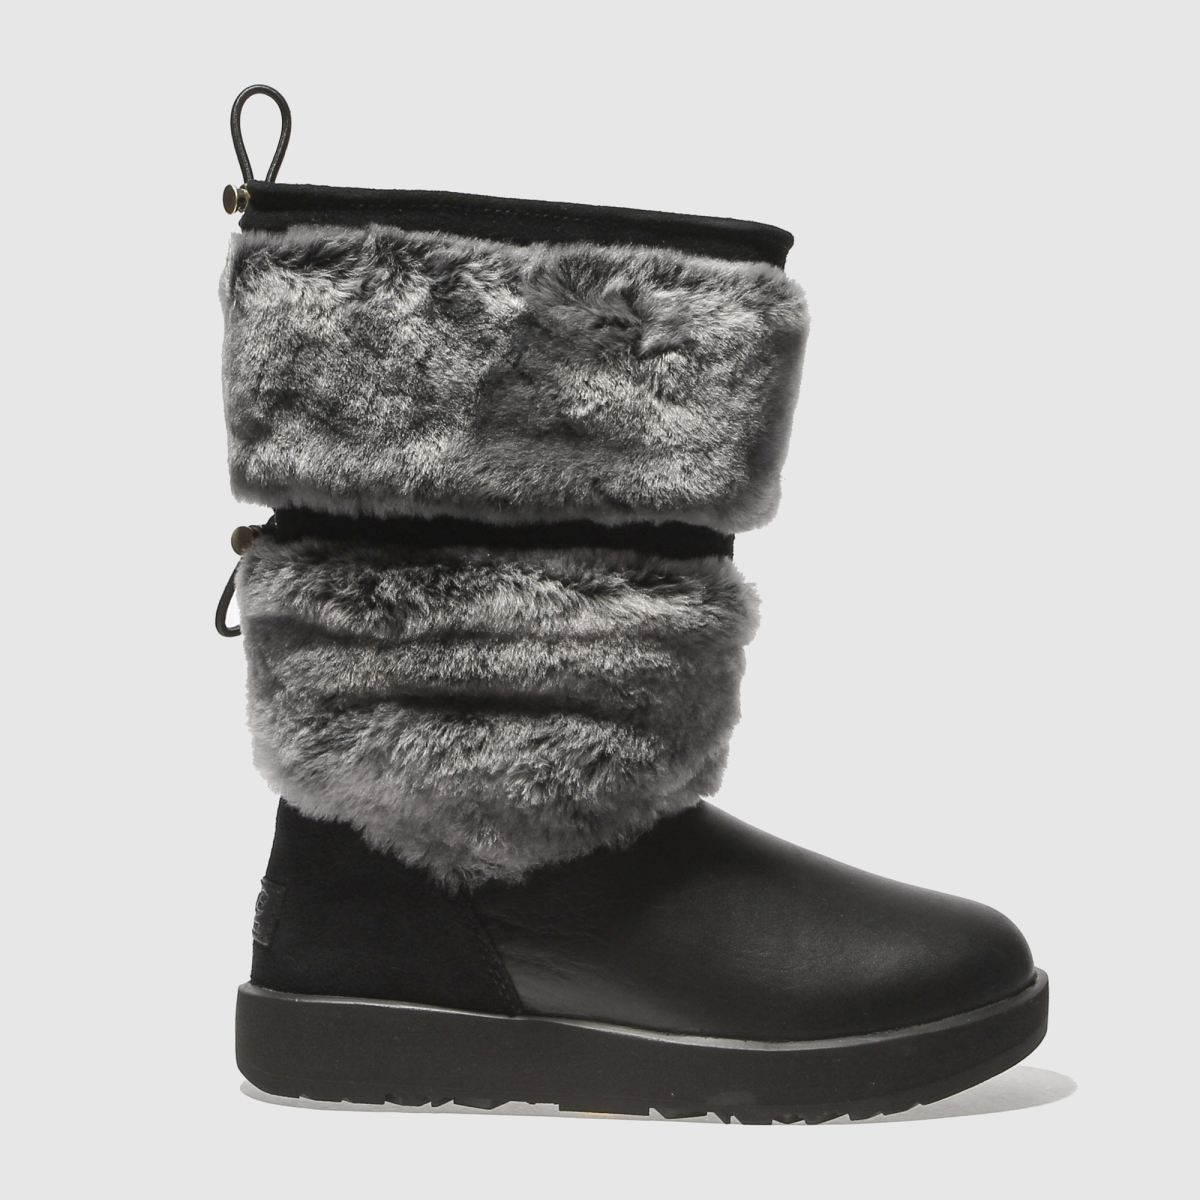 Ugg Black Reykir Waterproof Boots